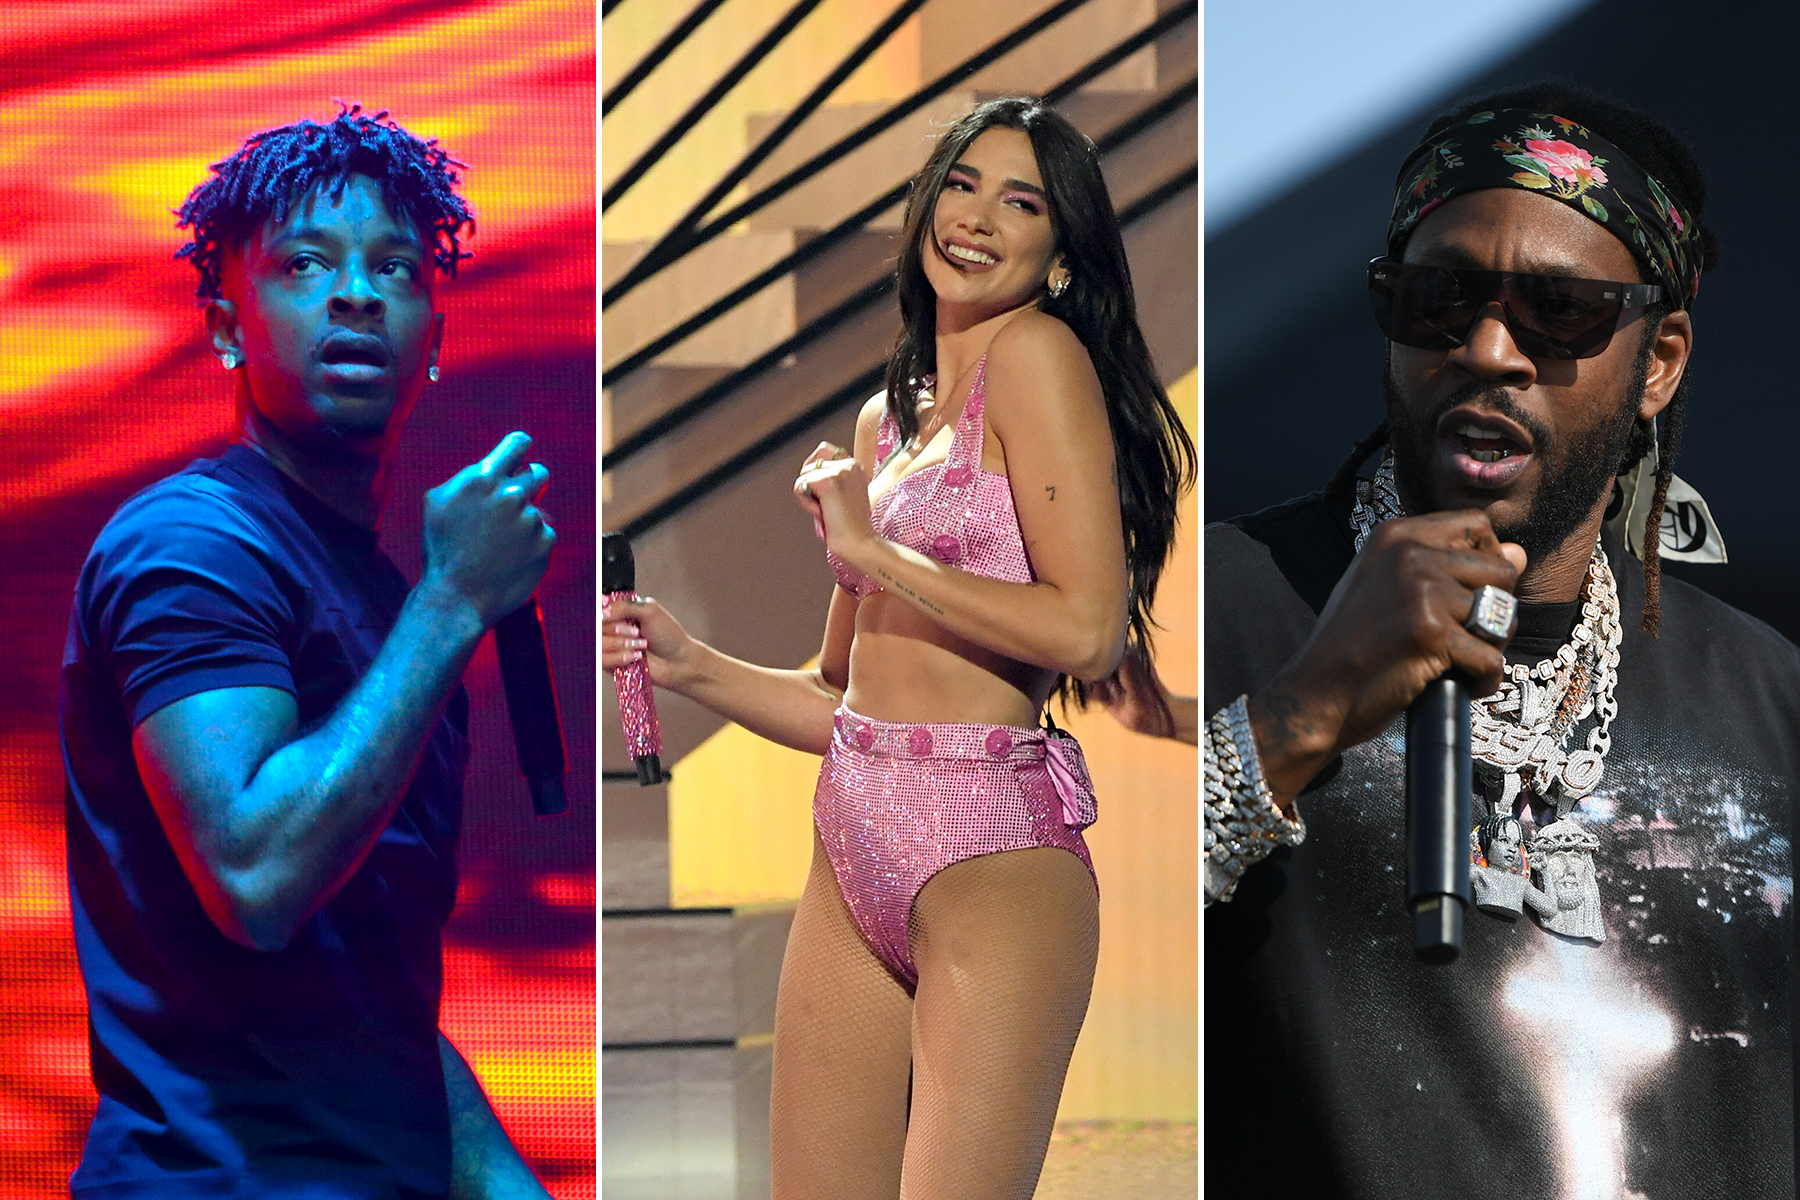 21 Savage, Dua Lipa, 2 Chainz to Be Featured on 'Gully' Soundtrack